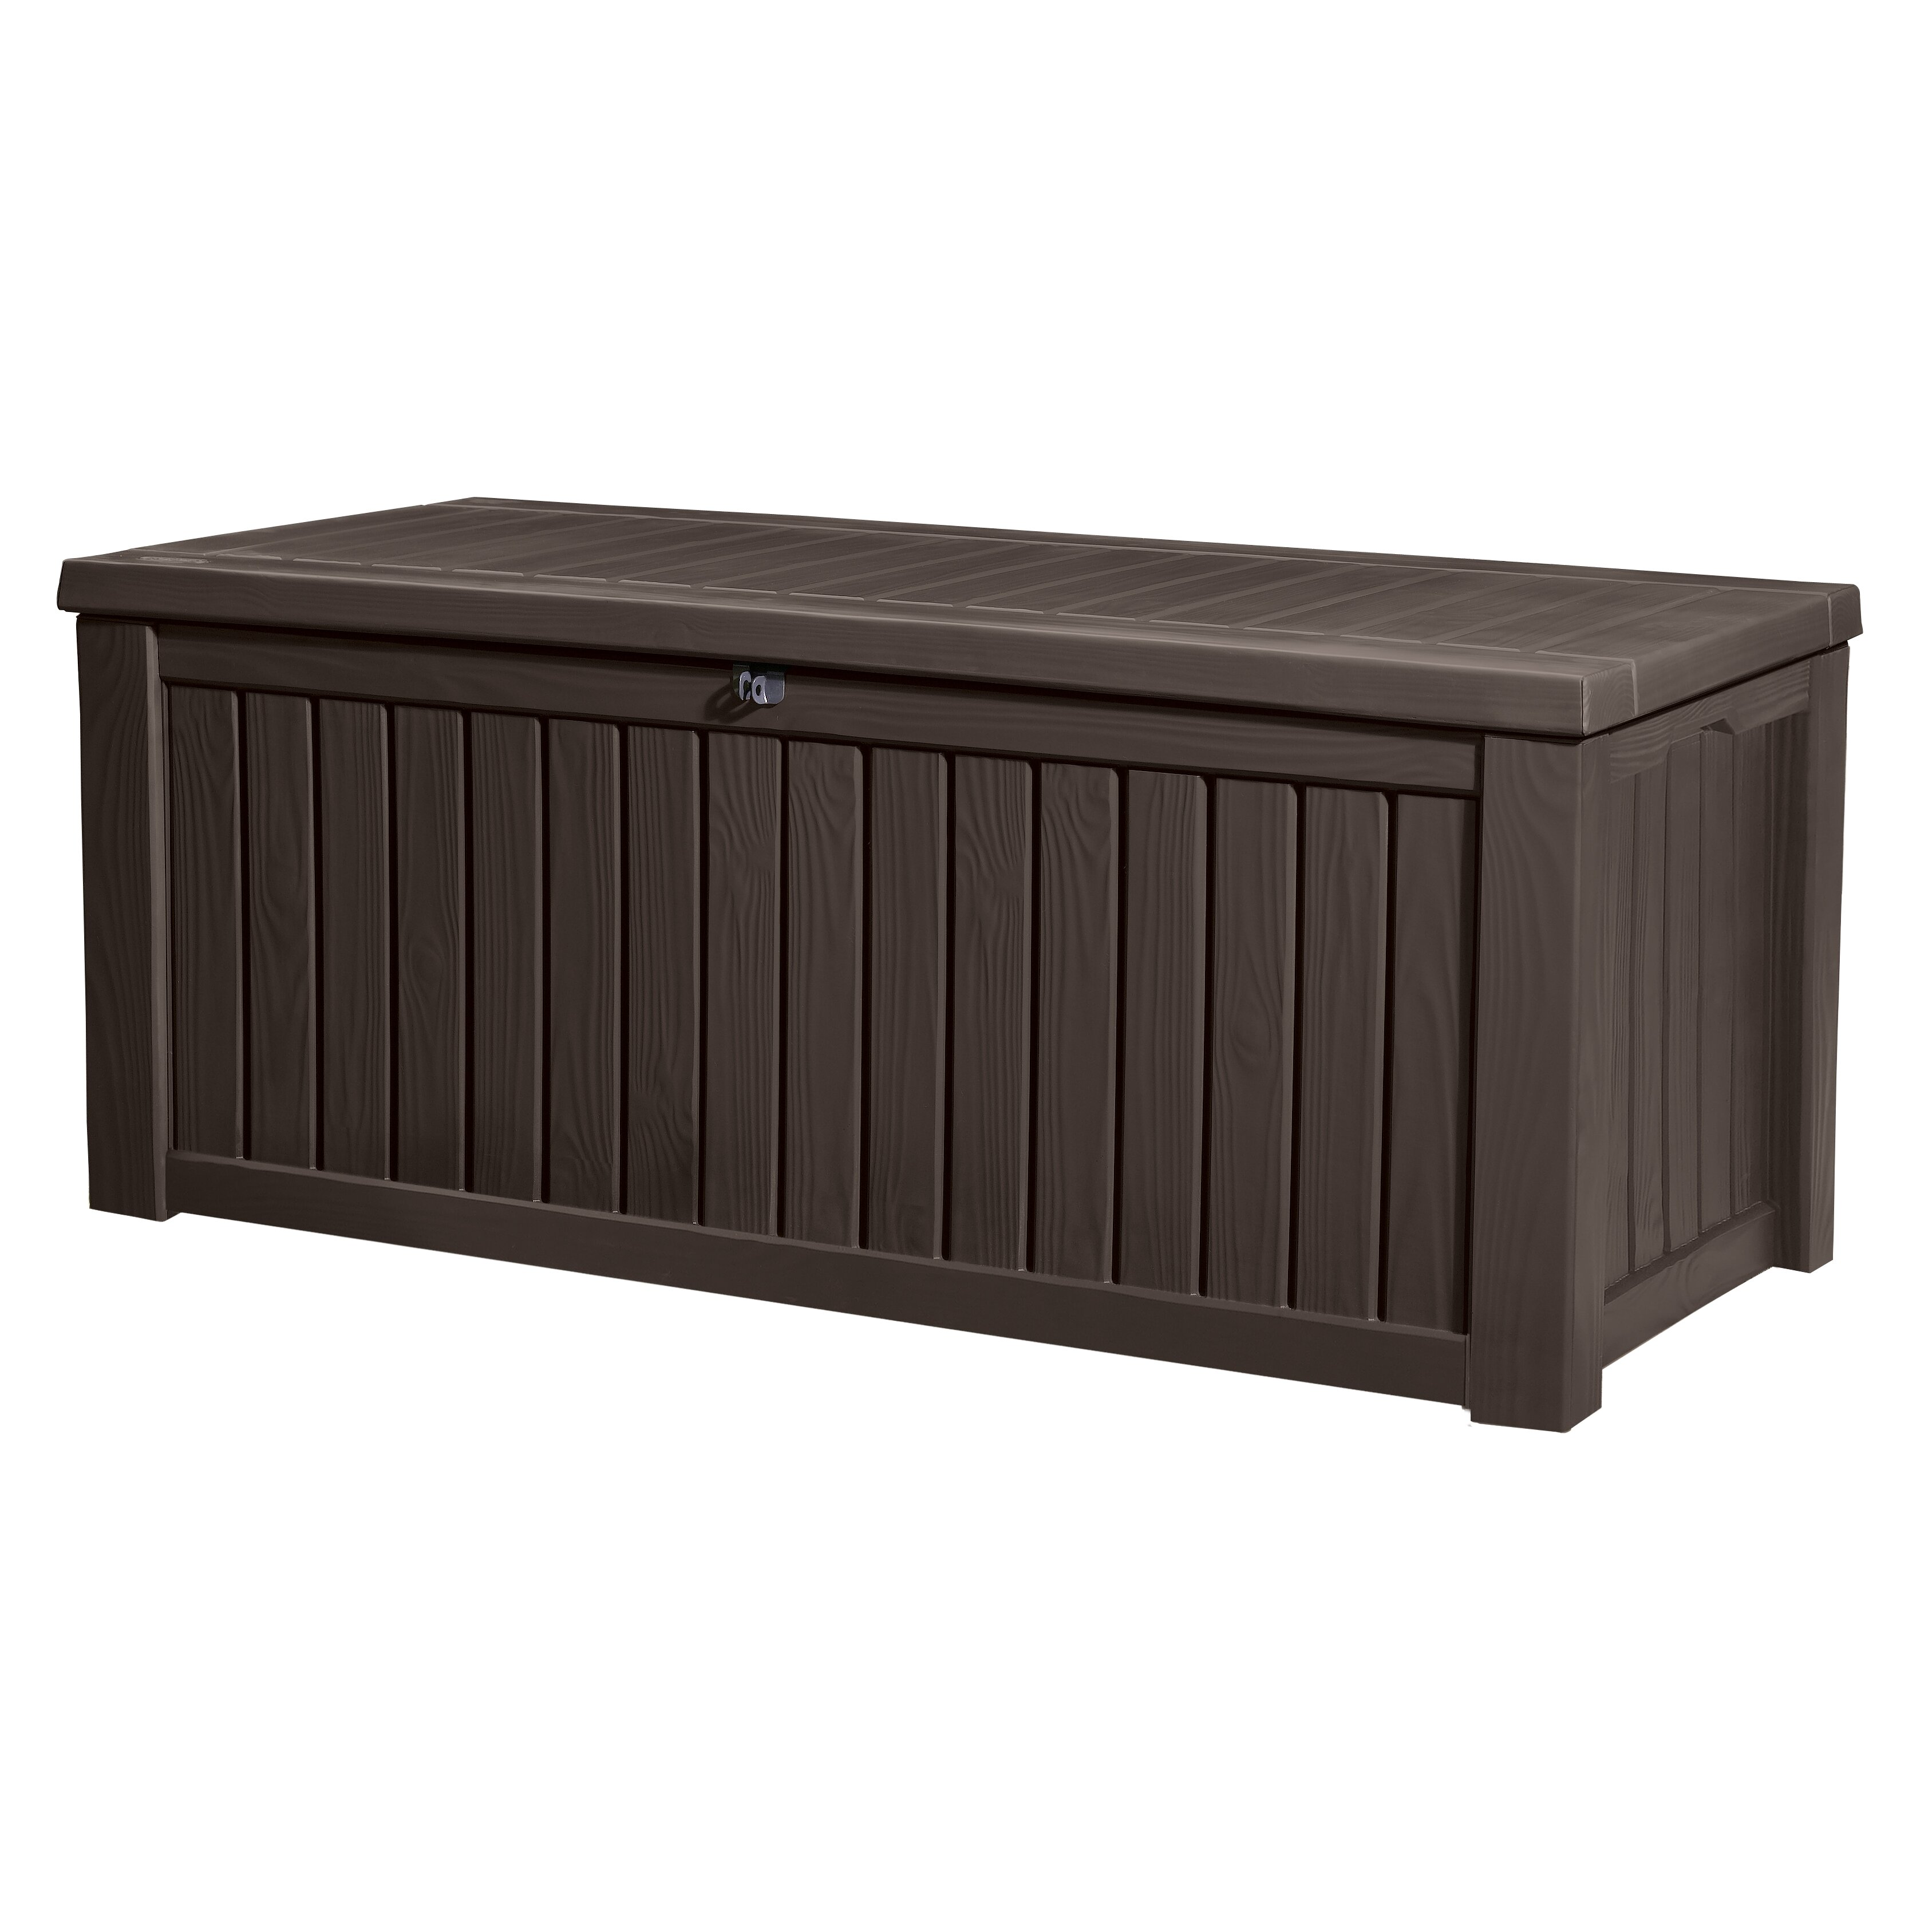 Keter rockwood 150 gallon plastic deck box reviews for Wayfair garden box